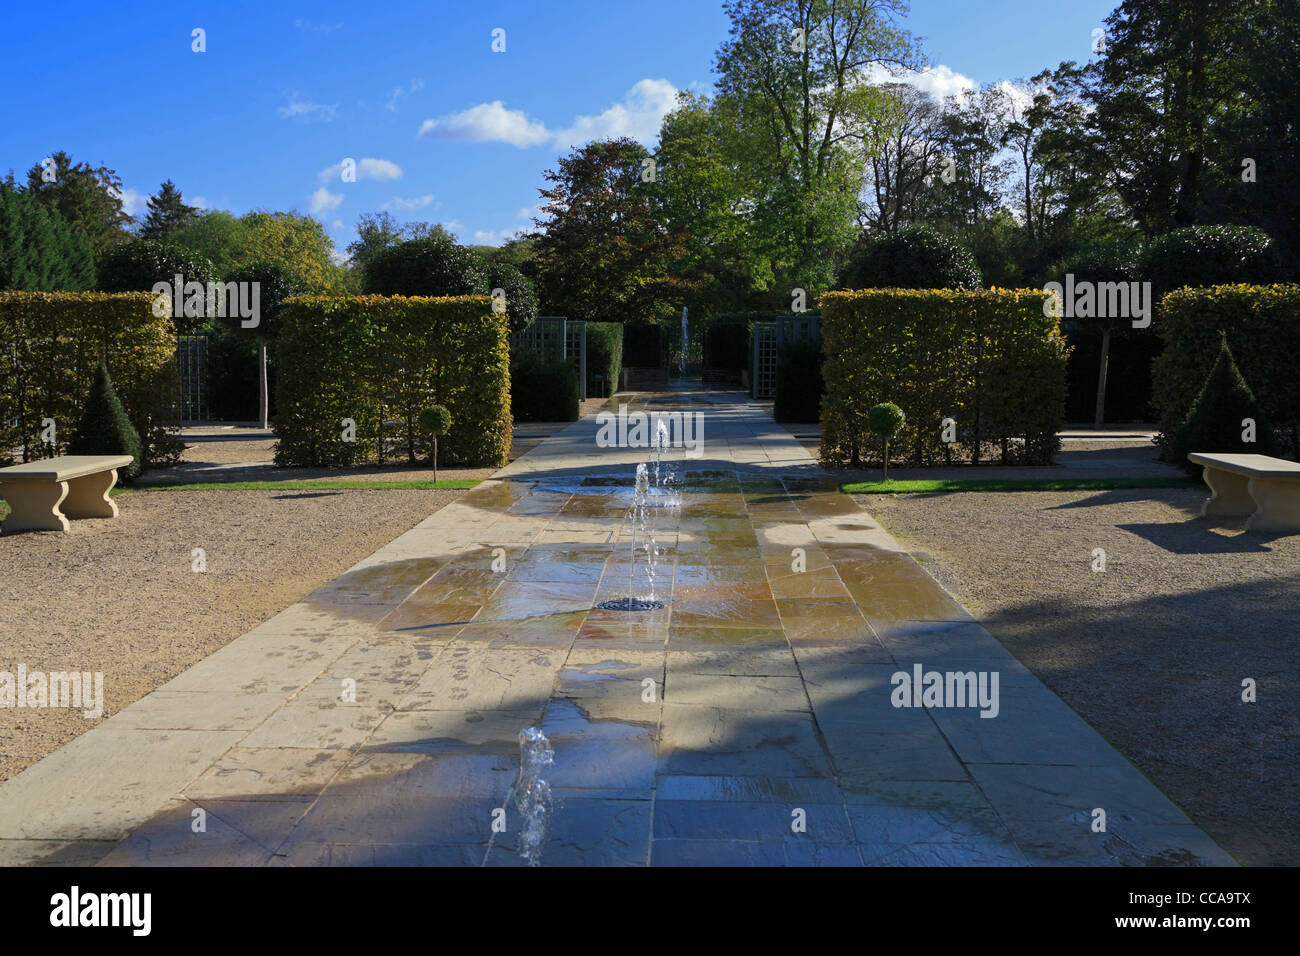 Burghley House Garden of Surprises. Fountains play randomly in the modern formal garden, possibly catching the unwary - Stock Image